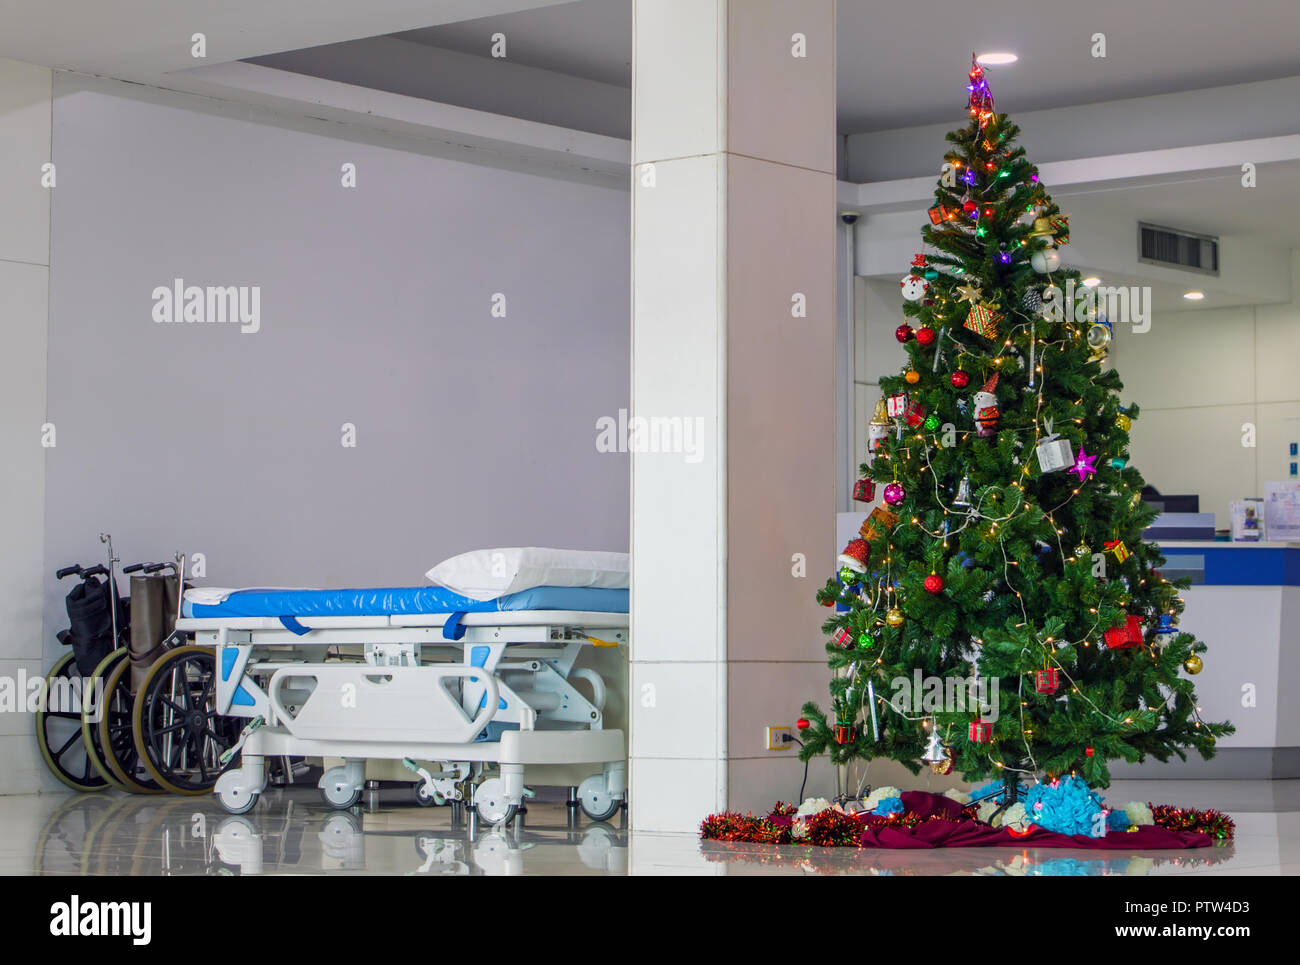 A Empty Wheelchair And Wheel Bed For Patient With Christmas